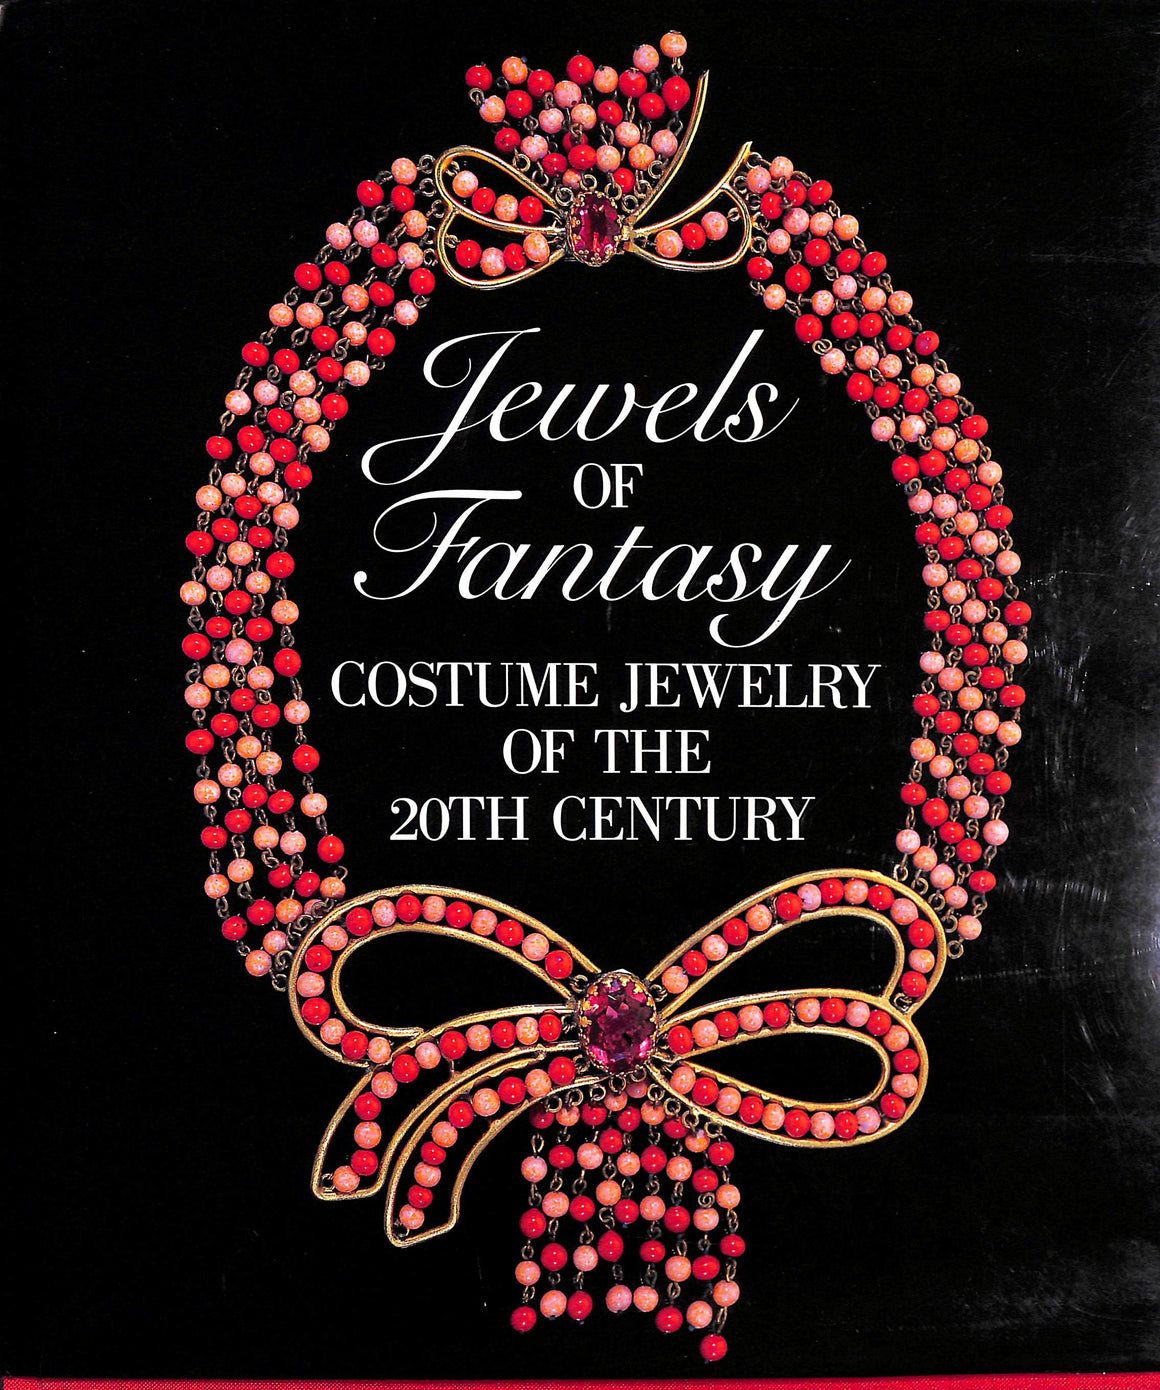 Jewels of Fantasy: Costume Jewelry of the 20th Century by Deanna Cera